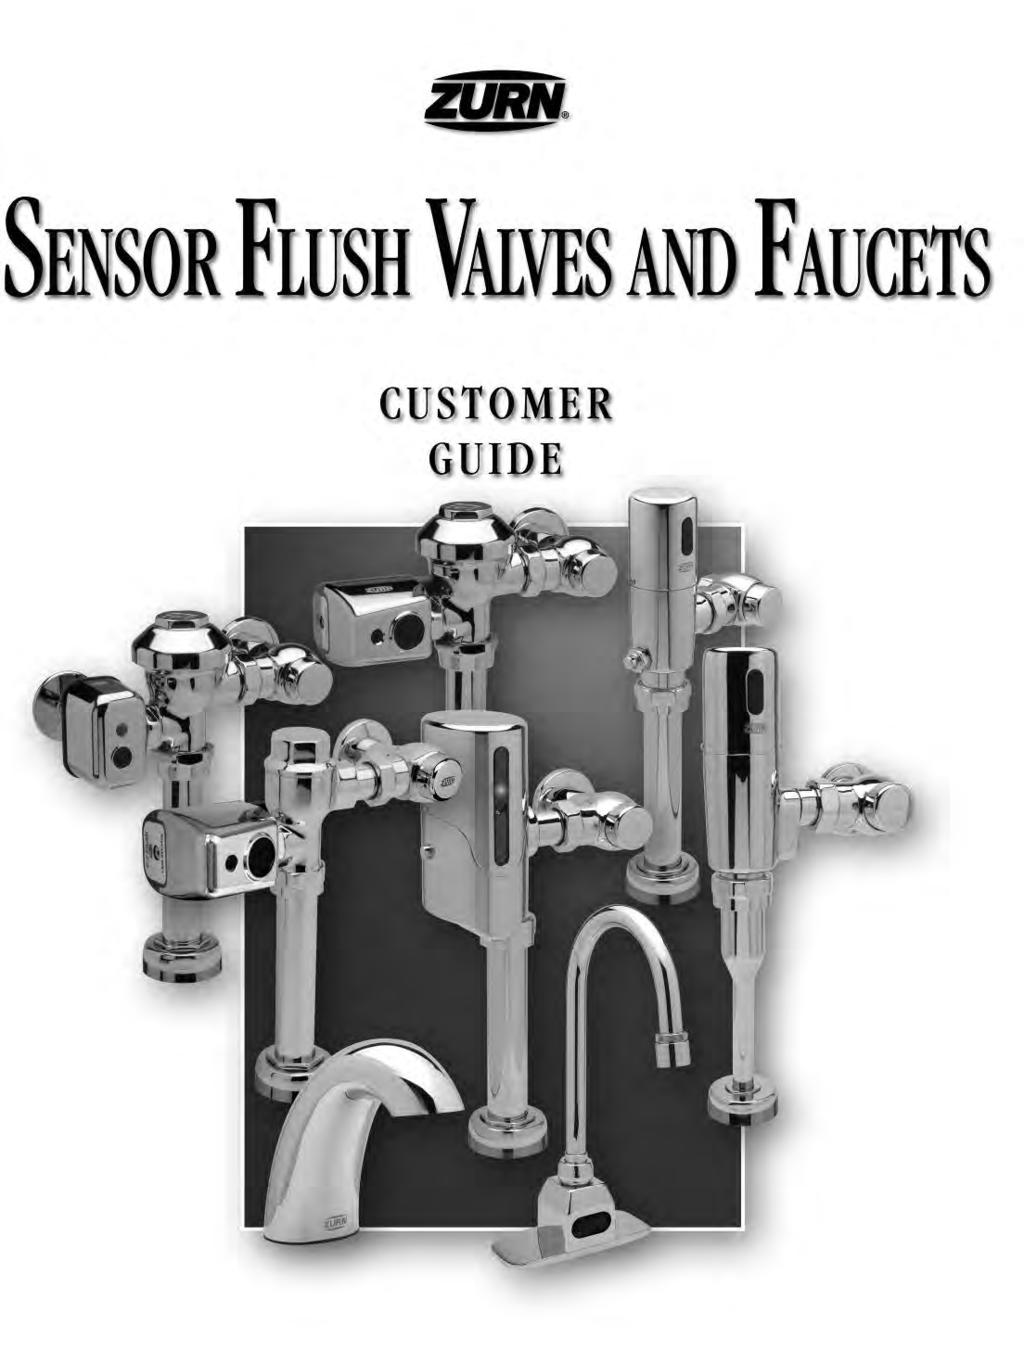 Sensor Flush Valves and